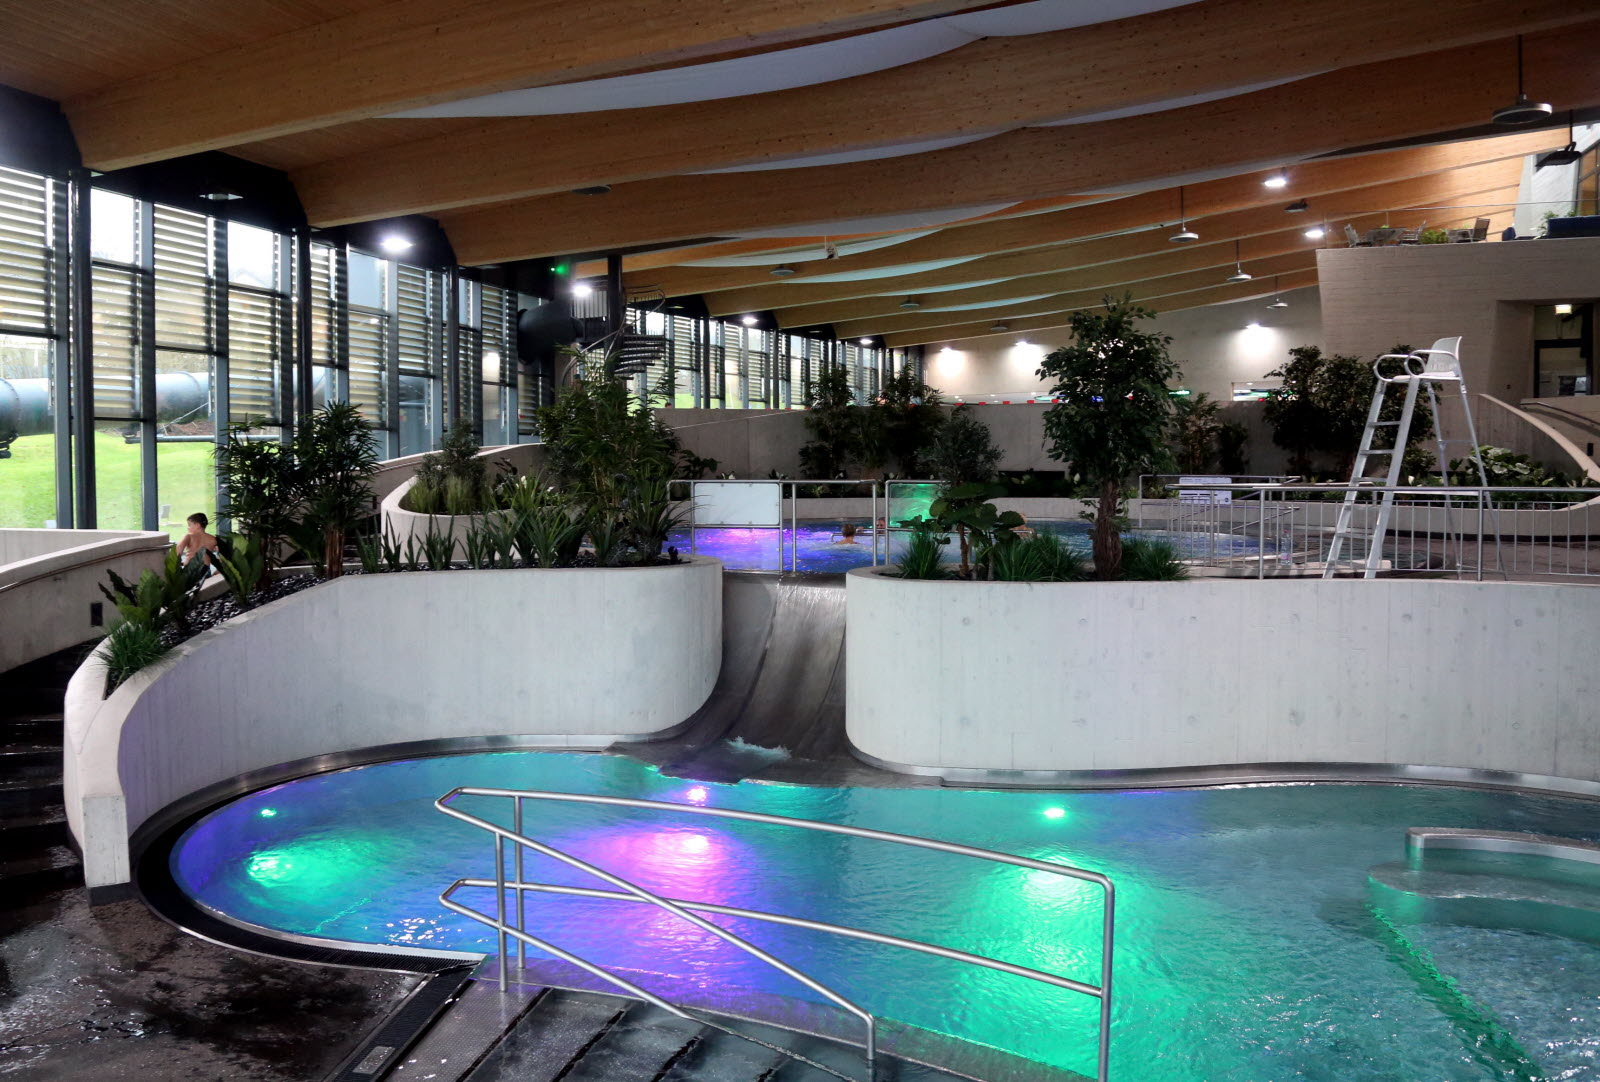 Edition Longwy | Photos. Differdange : Aquasud, Une Piscine ... serapportantà Piscine Differdange